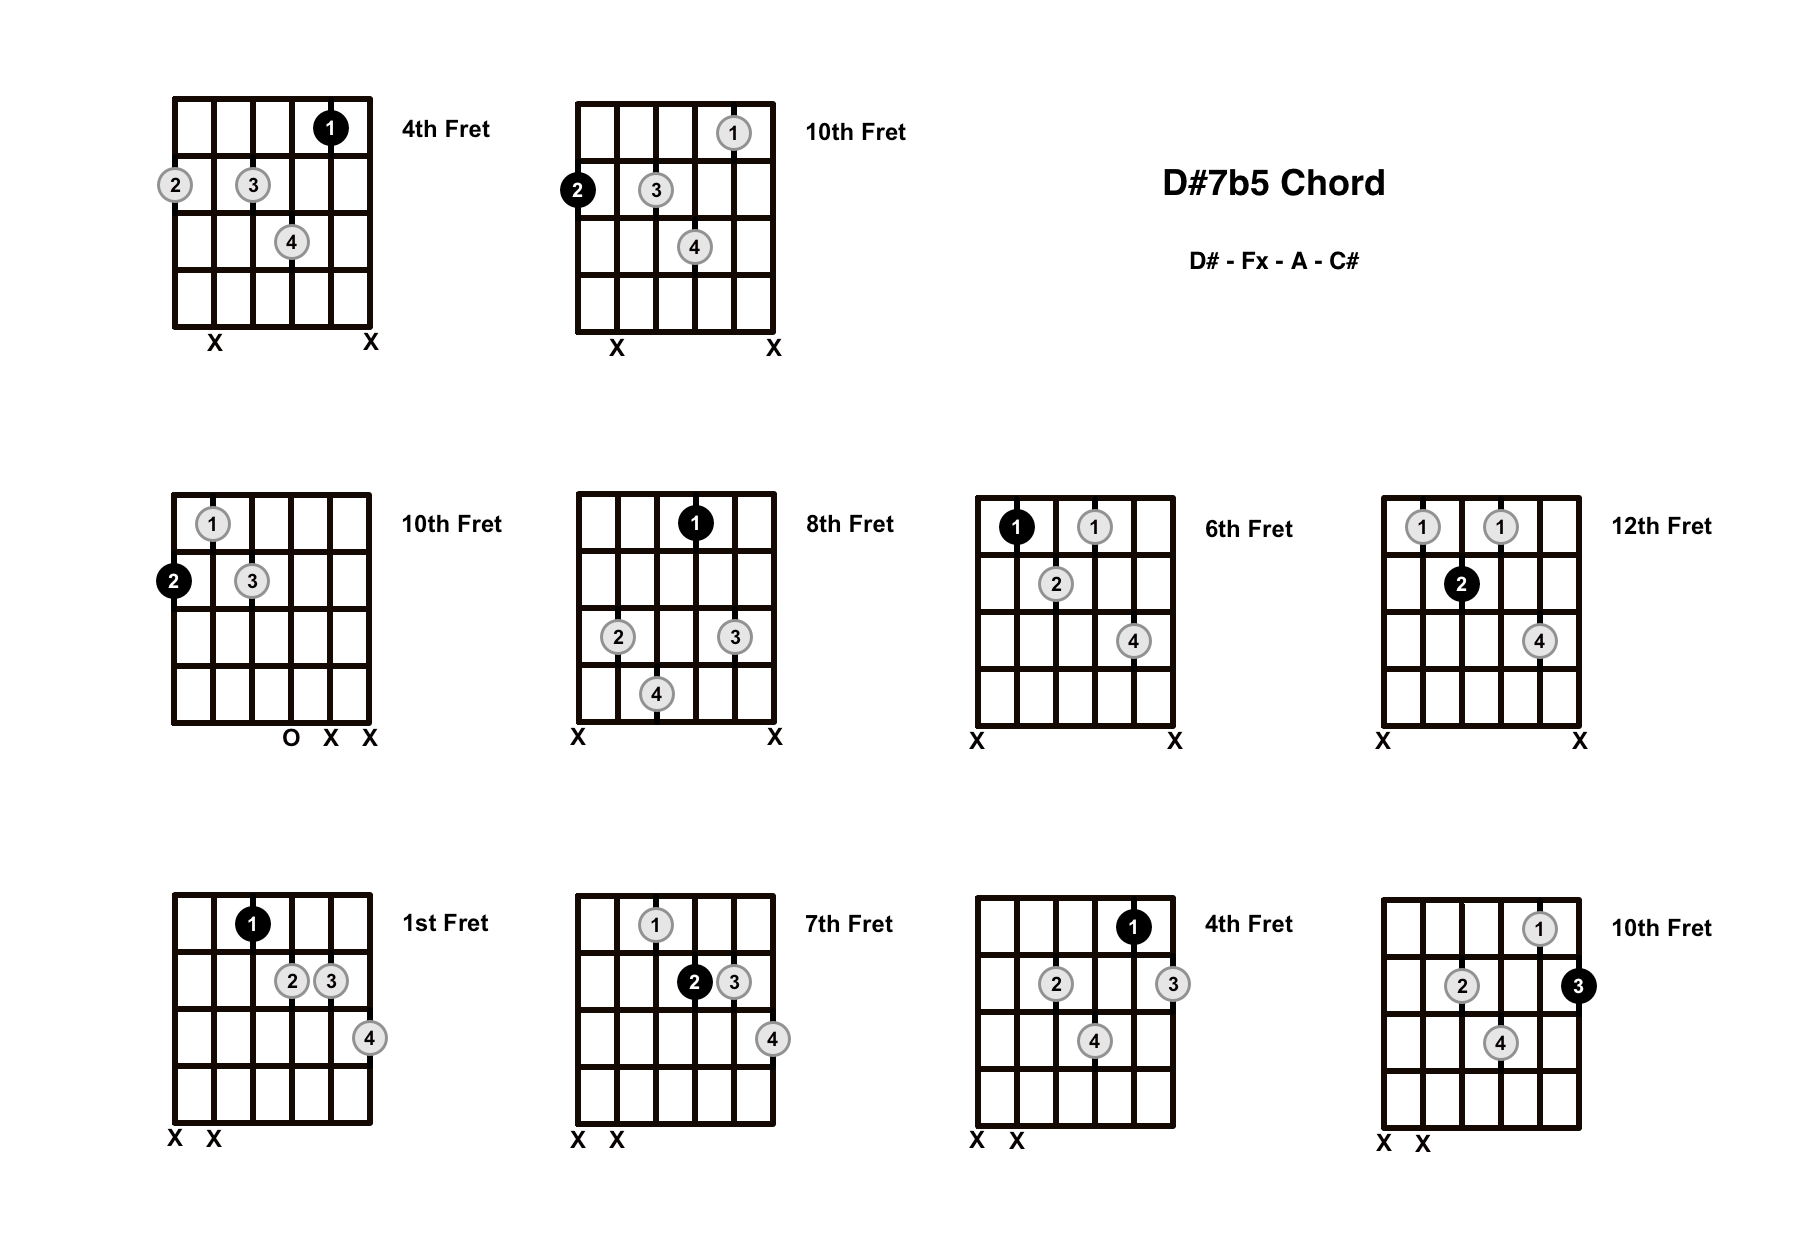 D#7b5 Chord On The Guitar (D Sharp Dominant 7 Flat 5) – Diagrams, Finger Positions and Theory